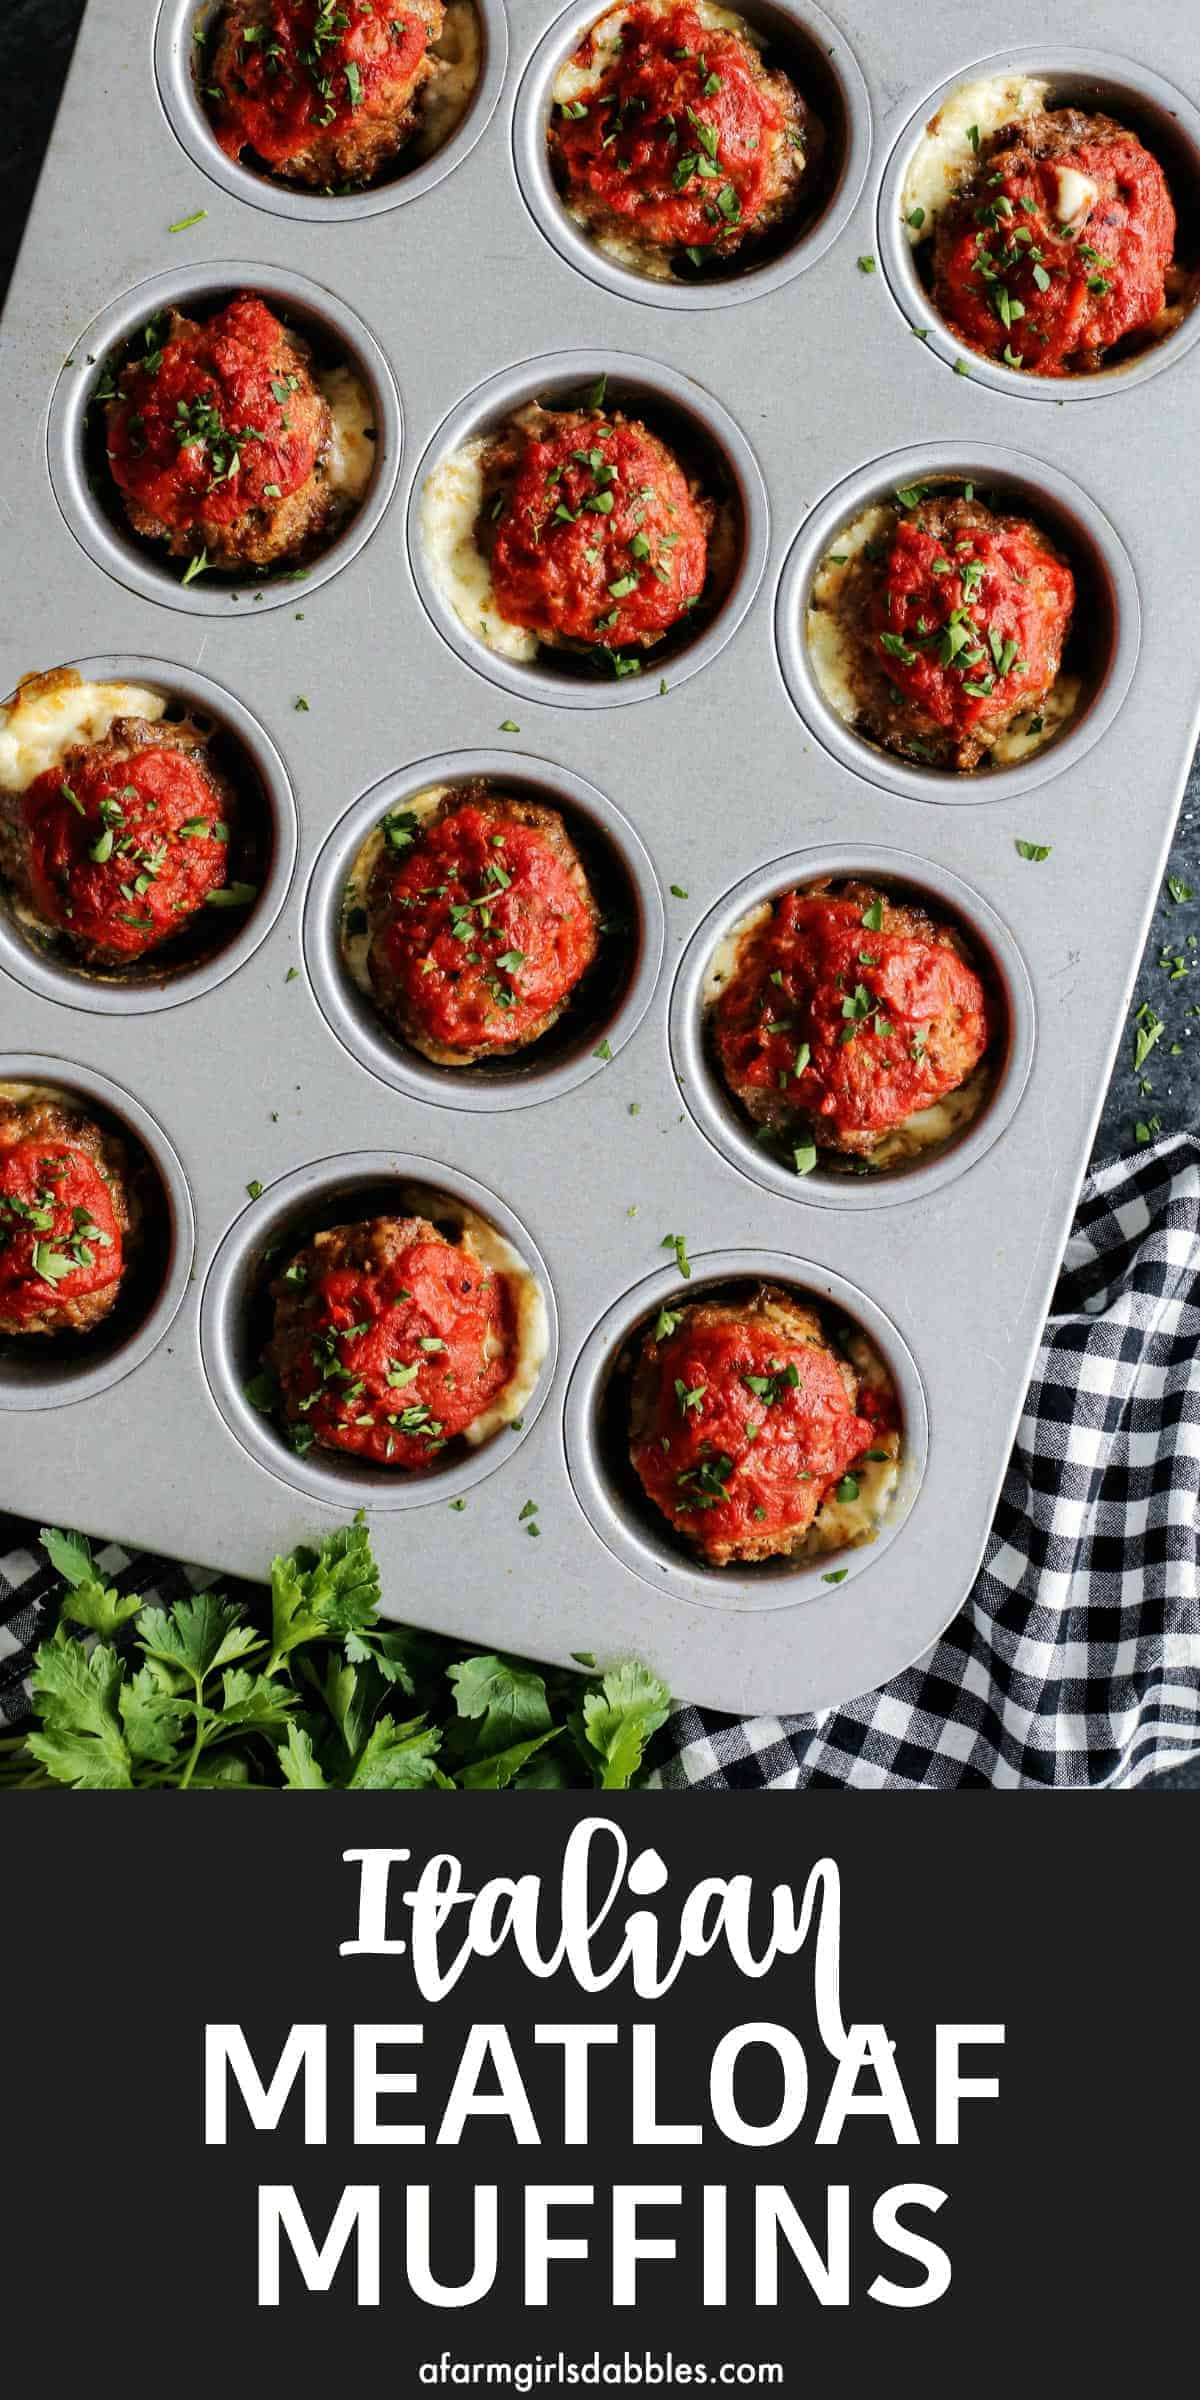 pinterest image of Italian Meatloaf Muffins in a muffin tin with black and white text below it